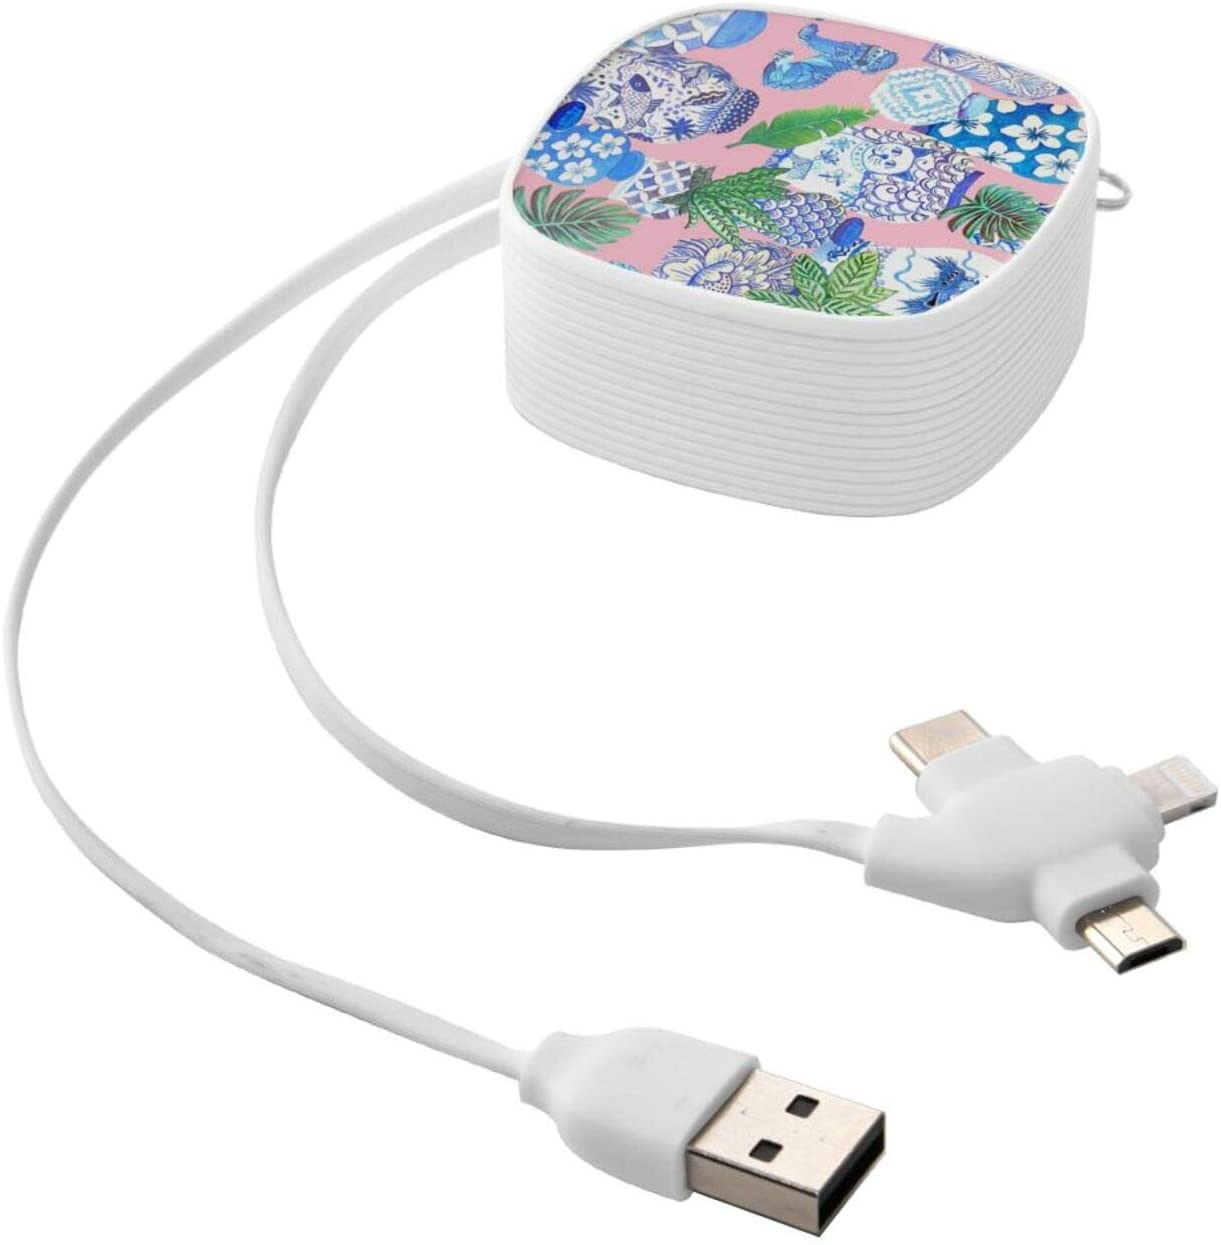 Multi Charging Cable Portable 3 in 1 Chinese Ginger Jars and Foo Dogs with Palms Throw Pillow USB Power Cords for Cell Phone Tablets and More Devices Charging